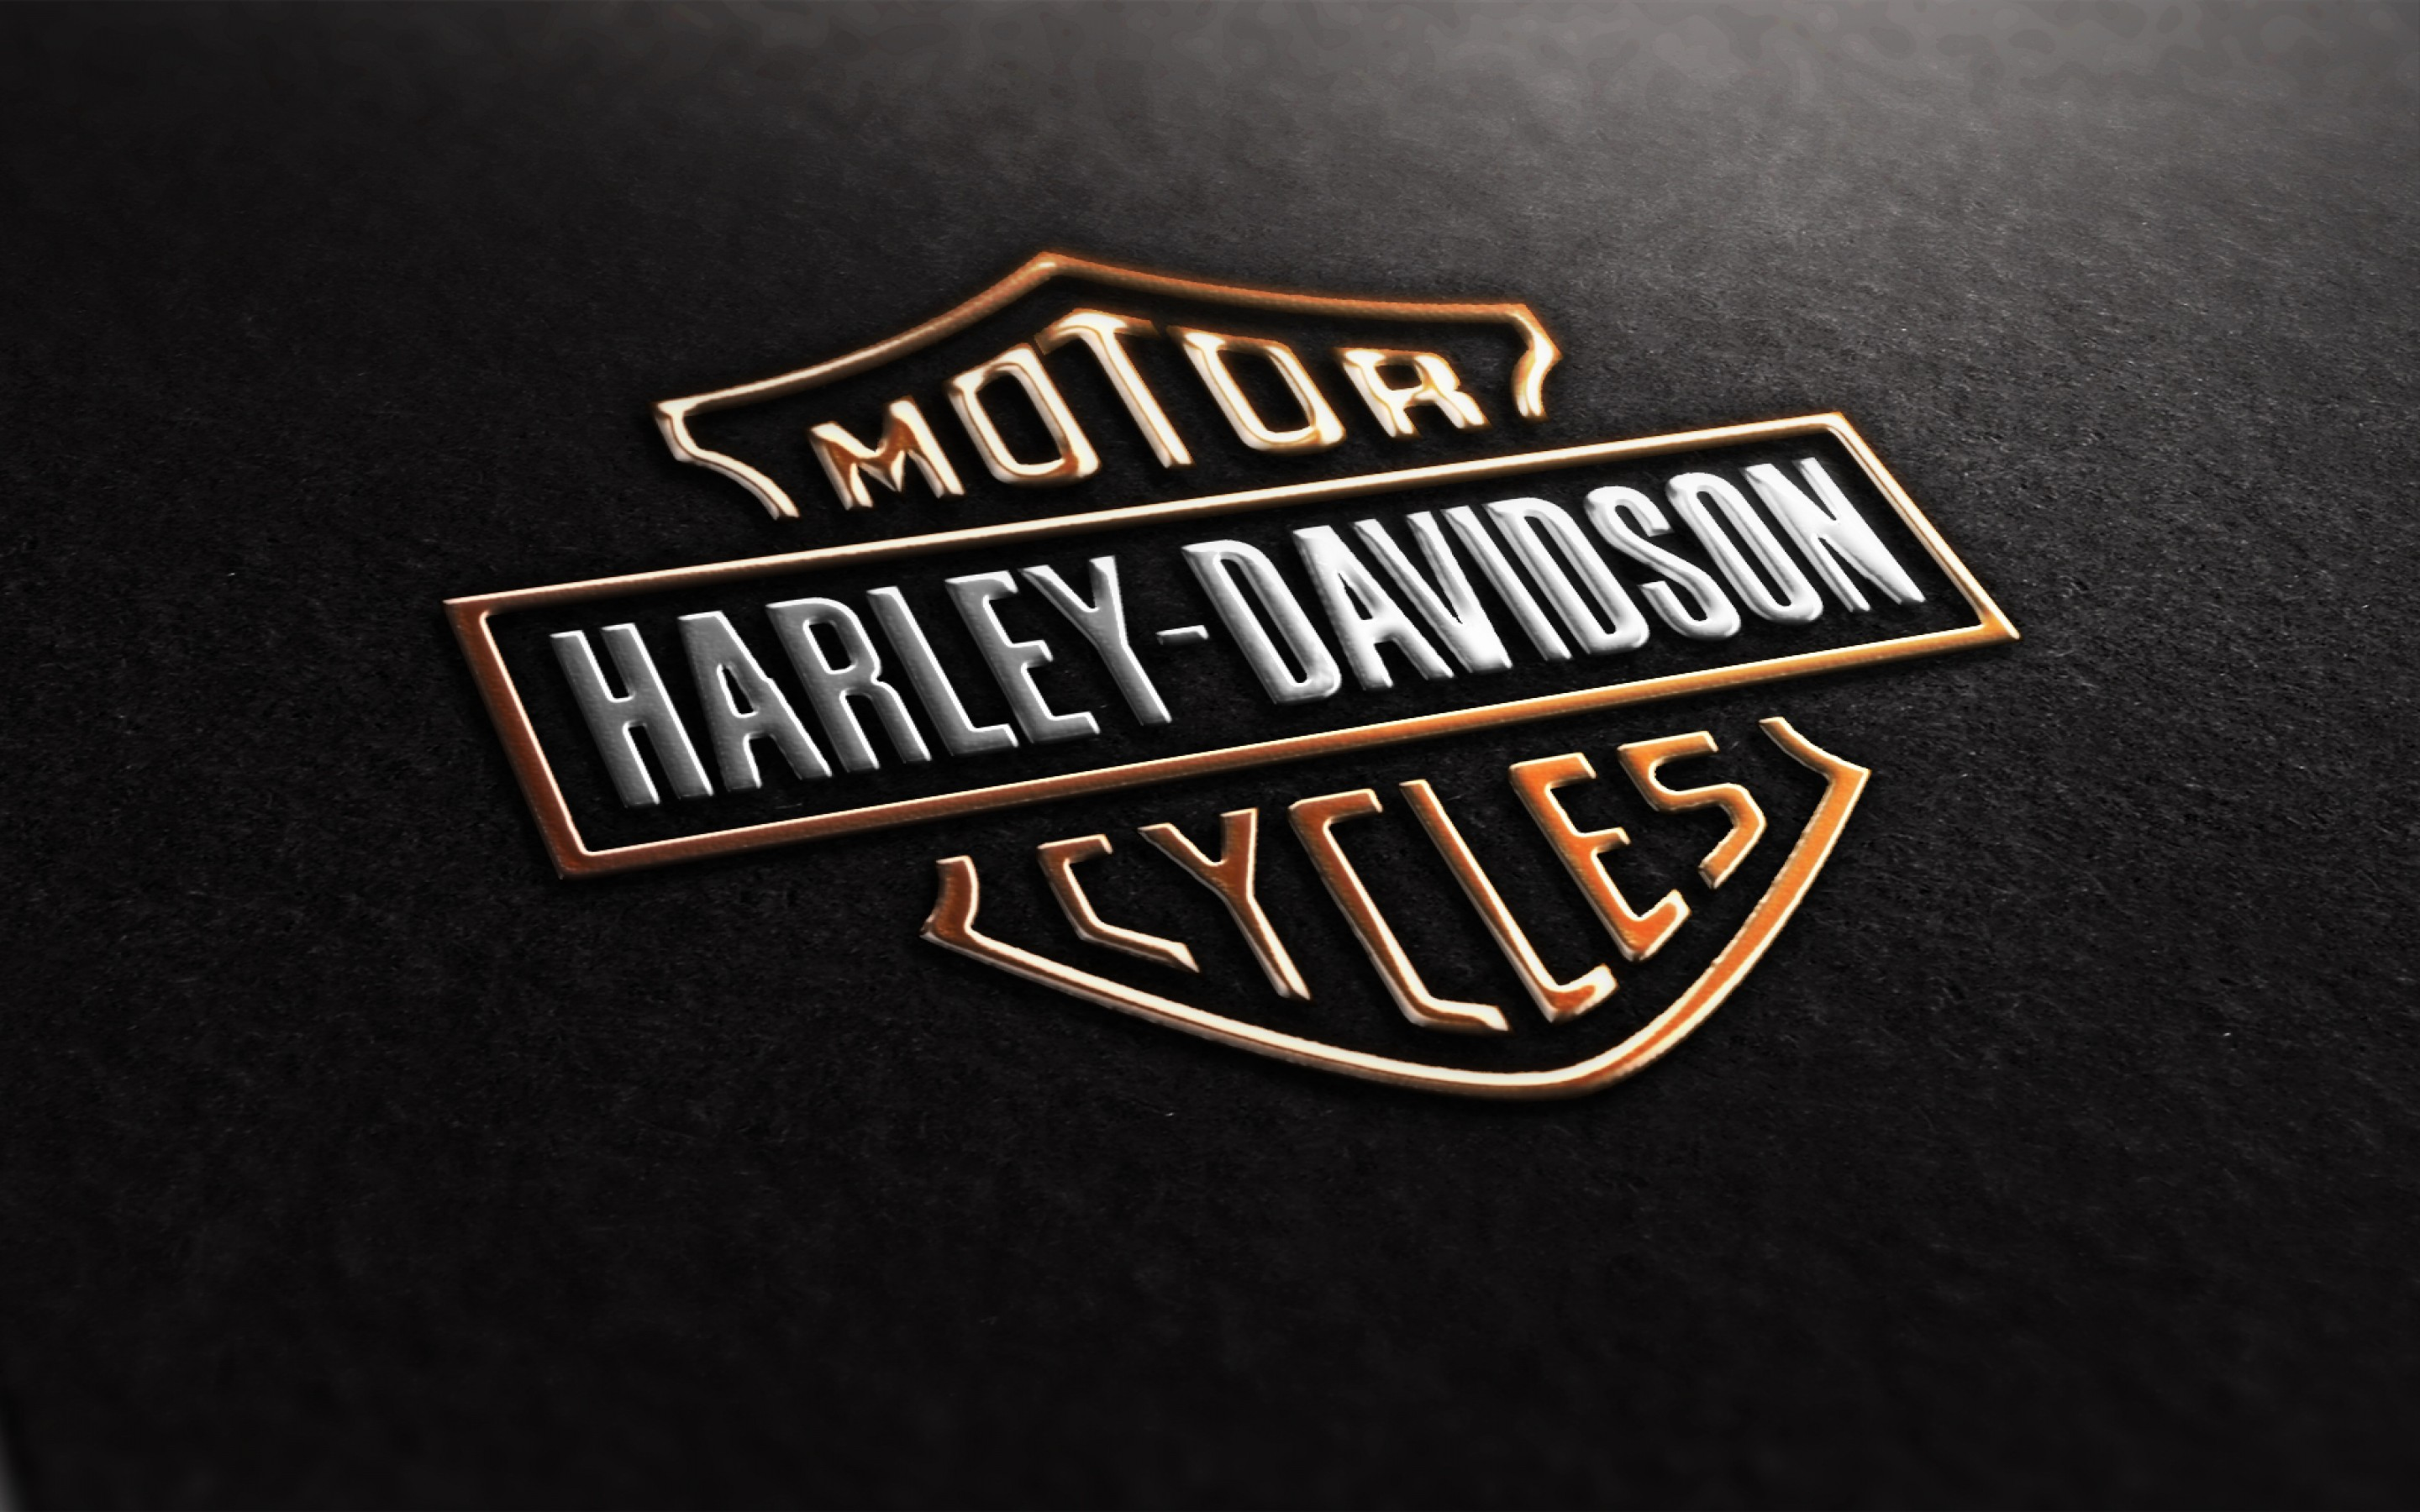 Harley Davidson Wallpapers Full Hd Wallpaper Search 2880x1800